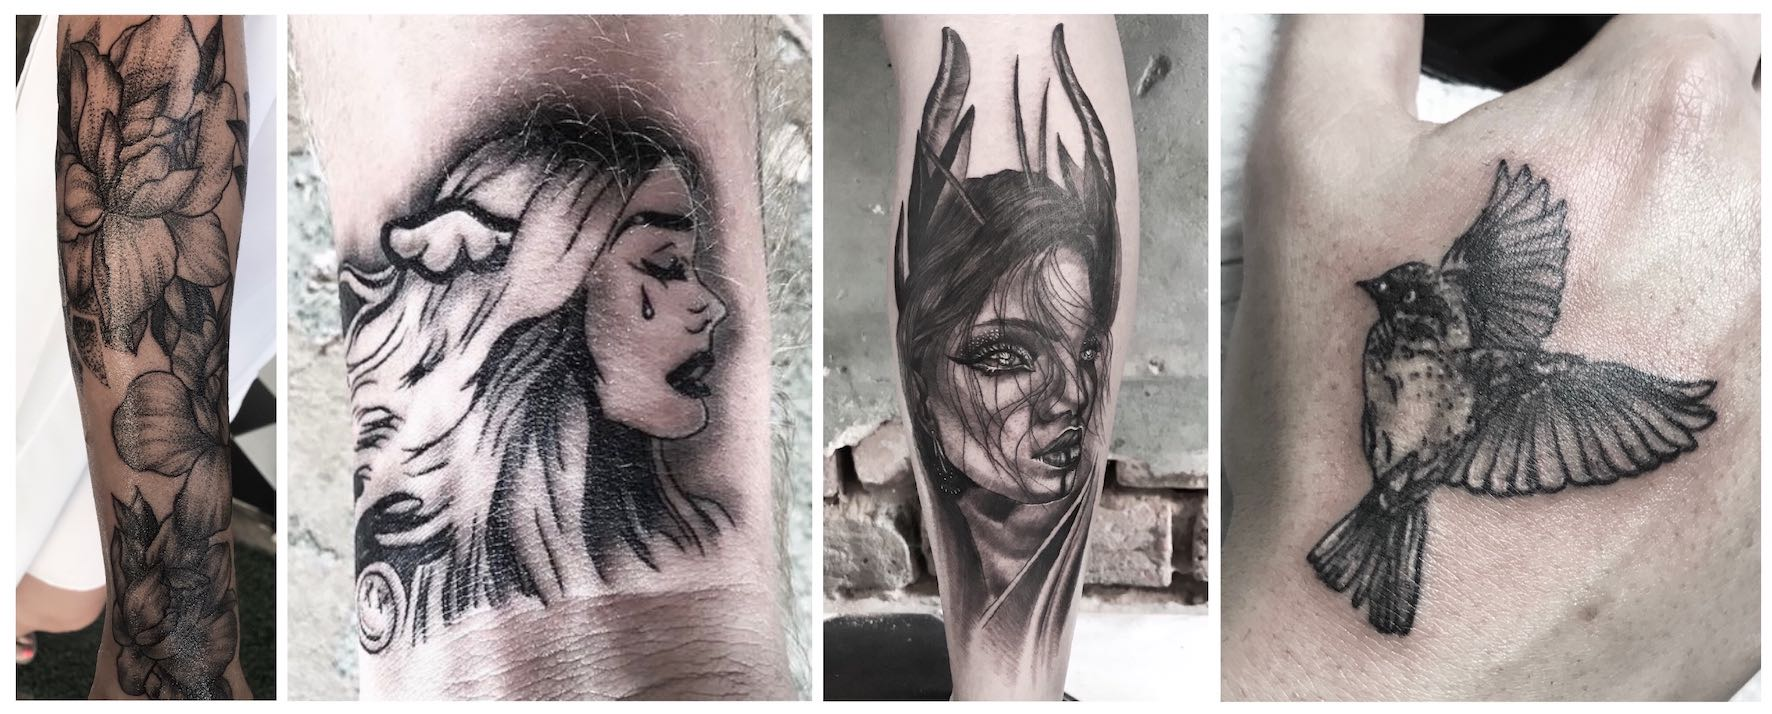 A selection of black and grey realism tattoos done by Shayleen Asher-Wood